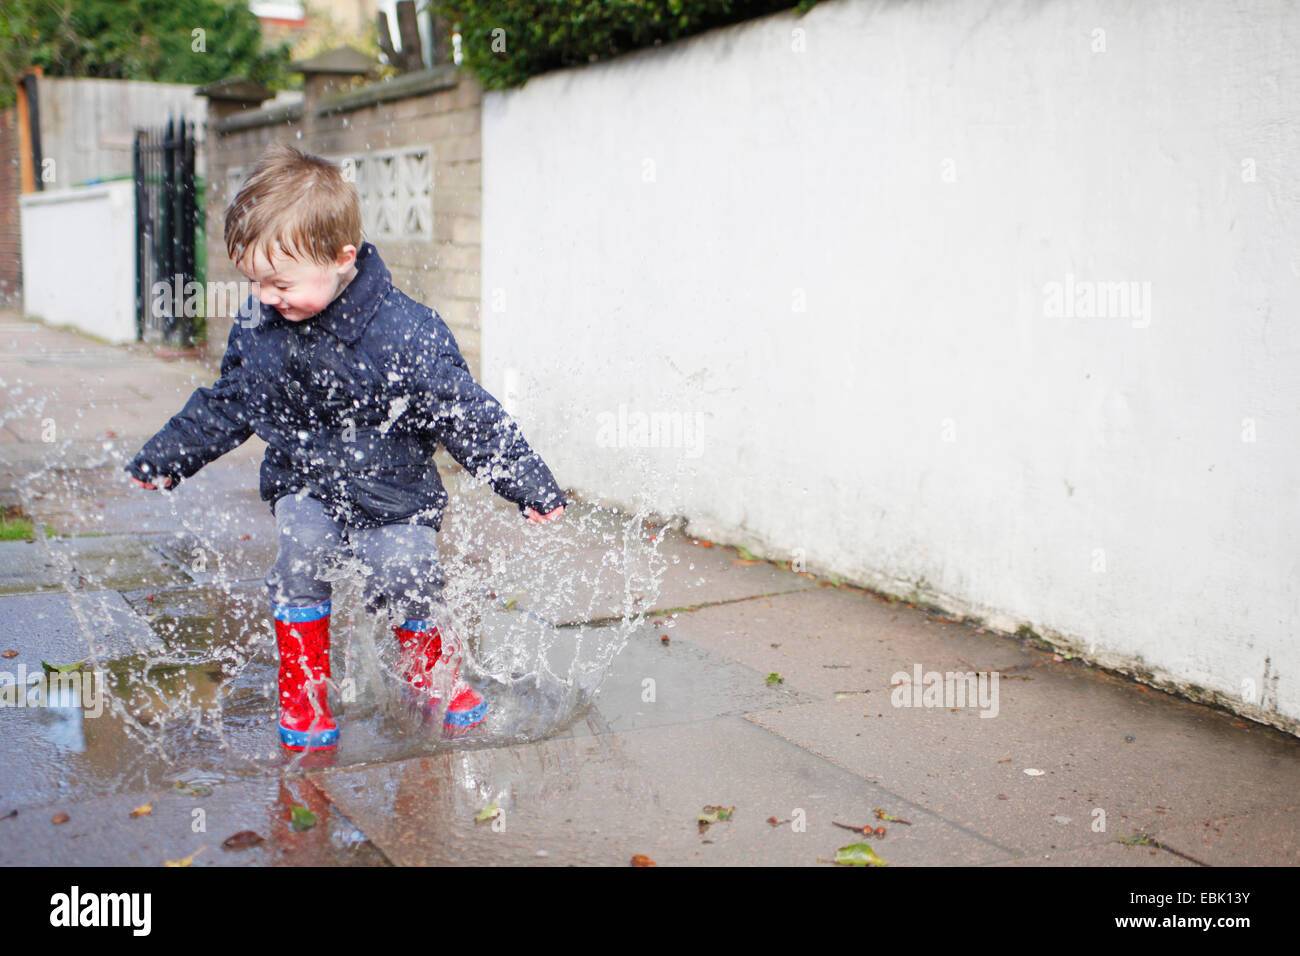 Male toddler in red rubber boots splashing in sidewalk puddle Stock Photo